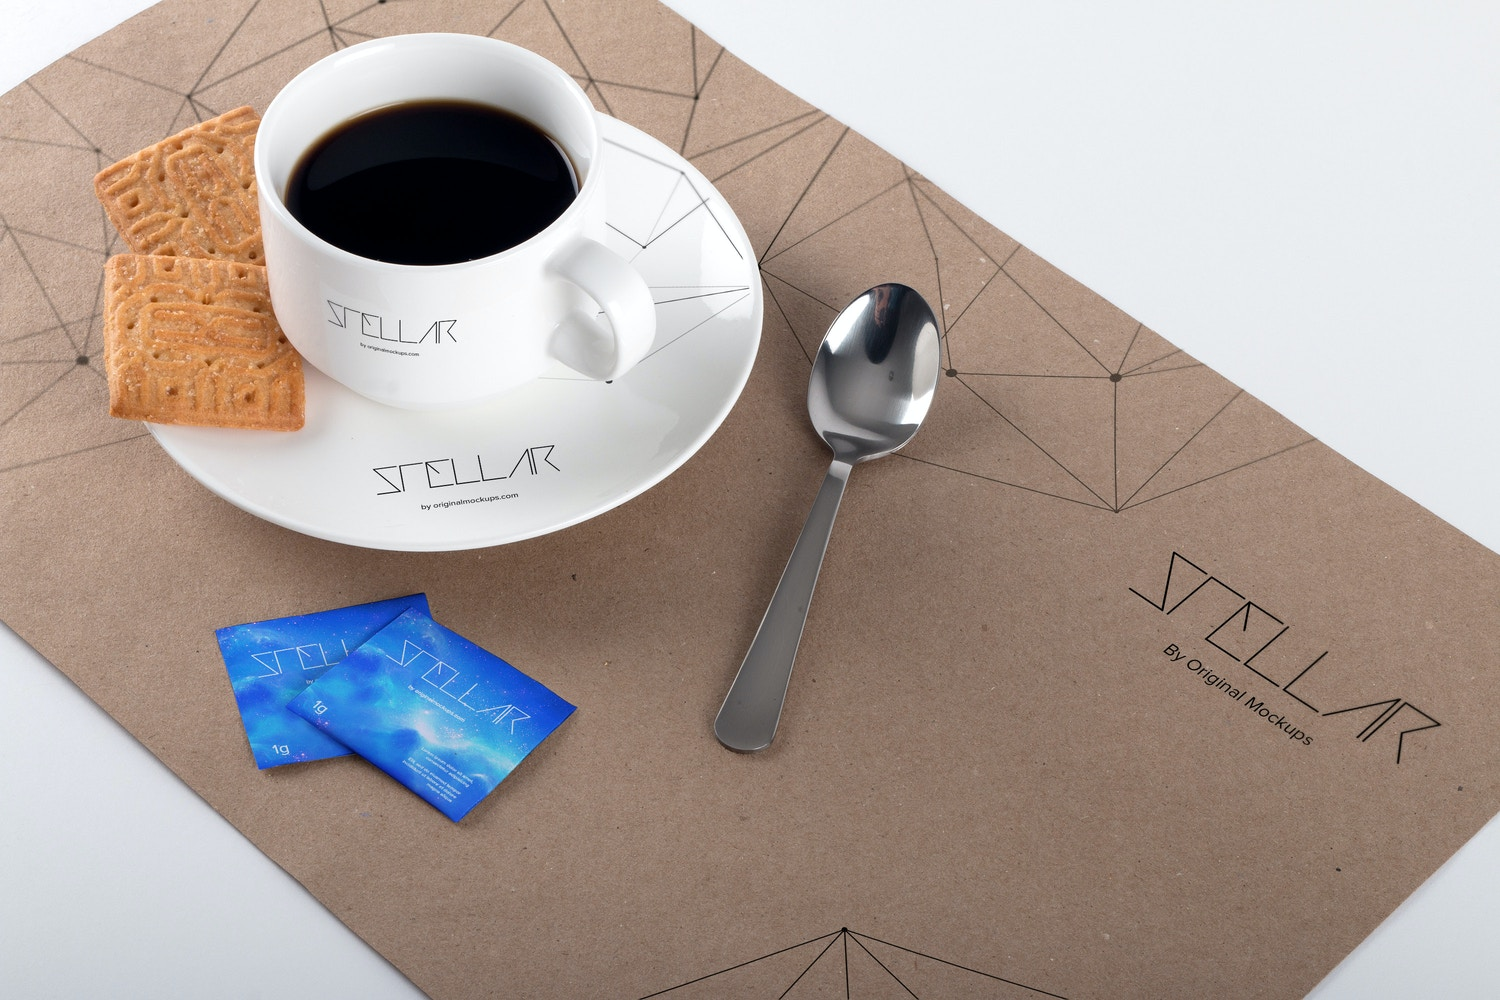 Coffee Cup and Placemat Mockup 02 by Original Mockups on Original Mockups